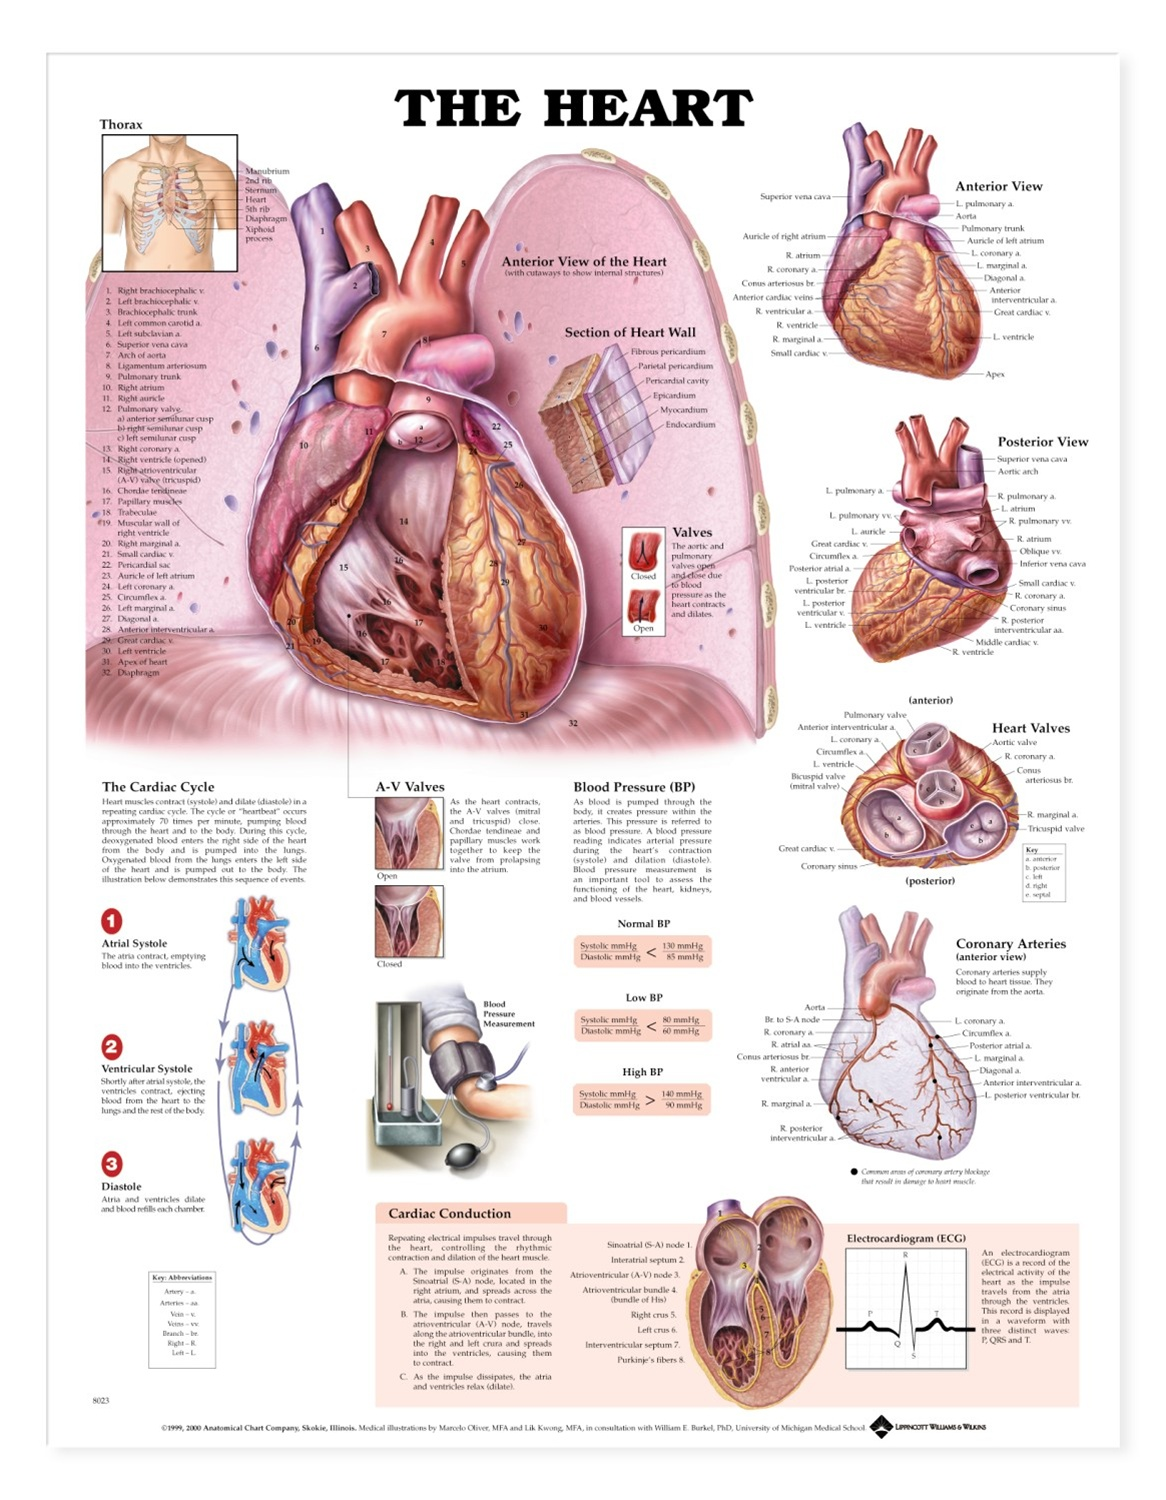 The Heart Anatomical Chart Anatomy Models And Anatomical Charts